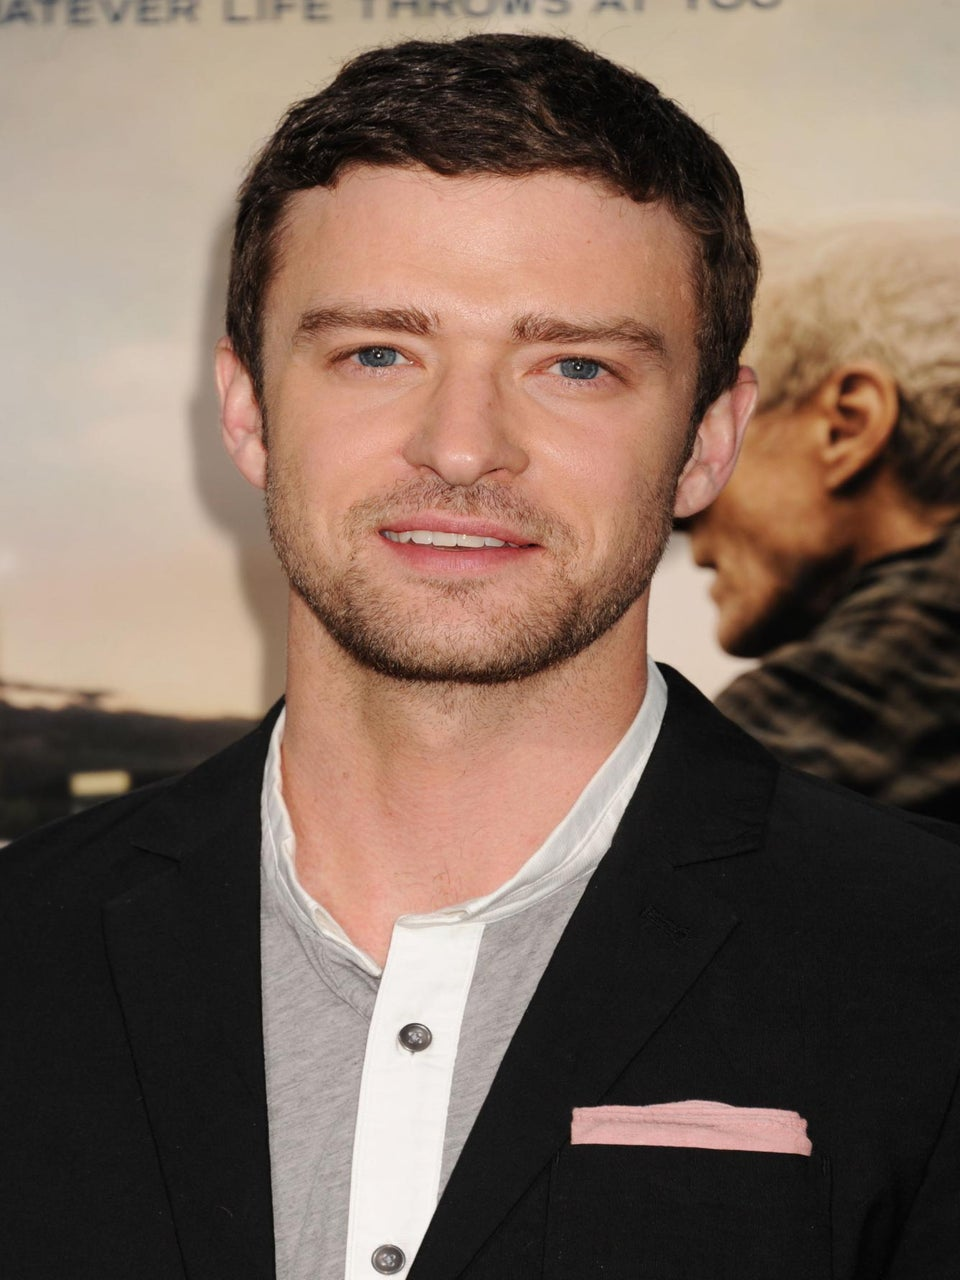 Must-Listen: Justin Timberlake Releases New Single Featuring Jay-Z